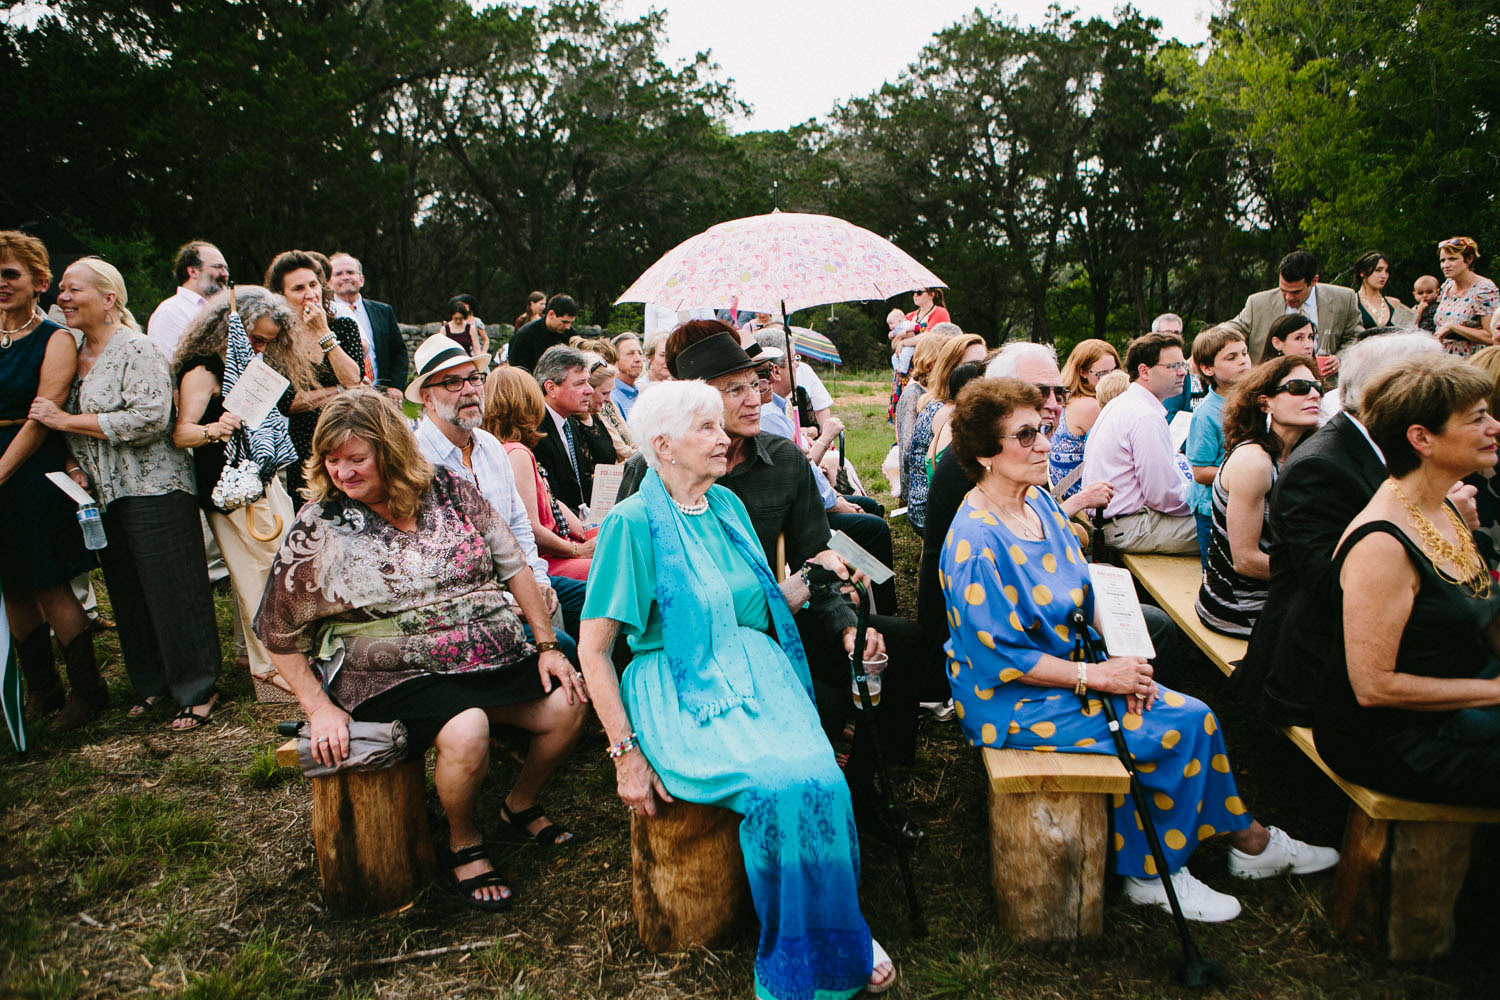 Wedding Guests on Homemade Pews   Home Ranch Wedding   Lisa Woods Photography